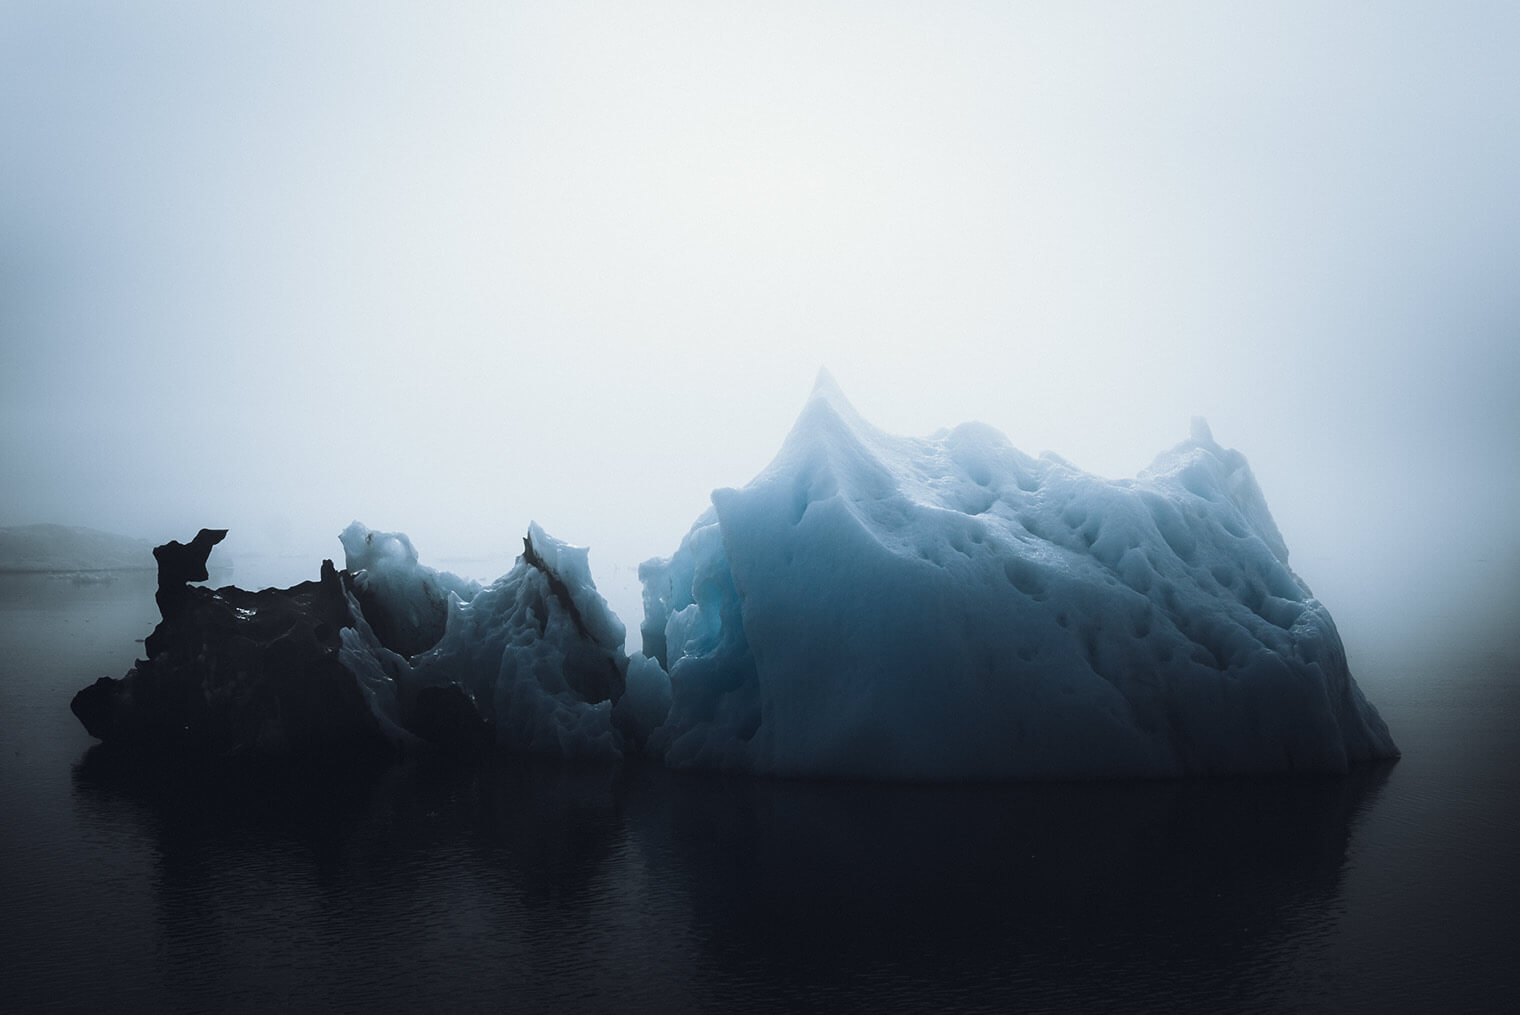 Northlandscapes – Jan Erik Waider | Landscape and commercial photography of the North